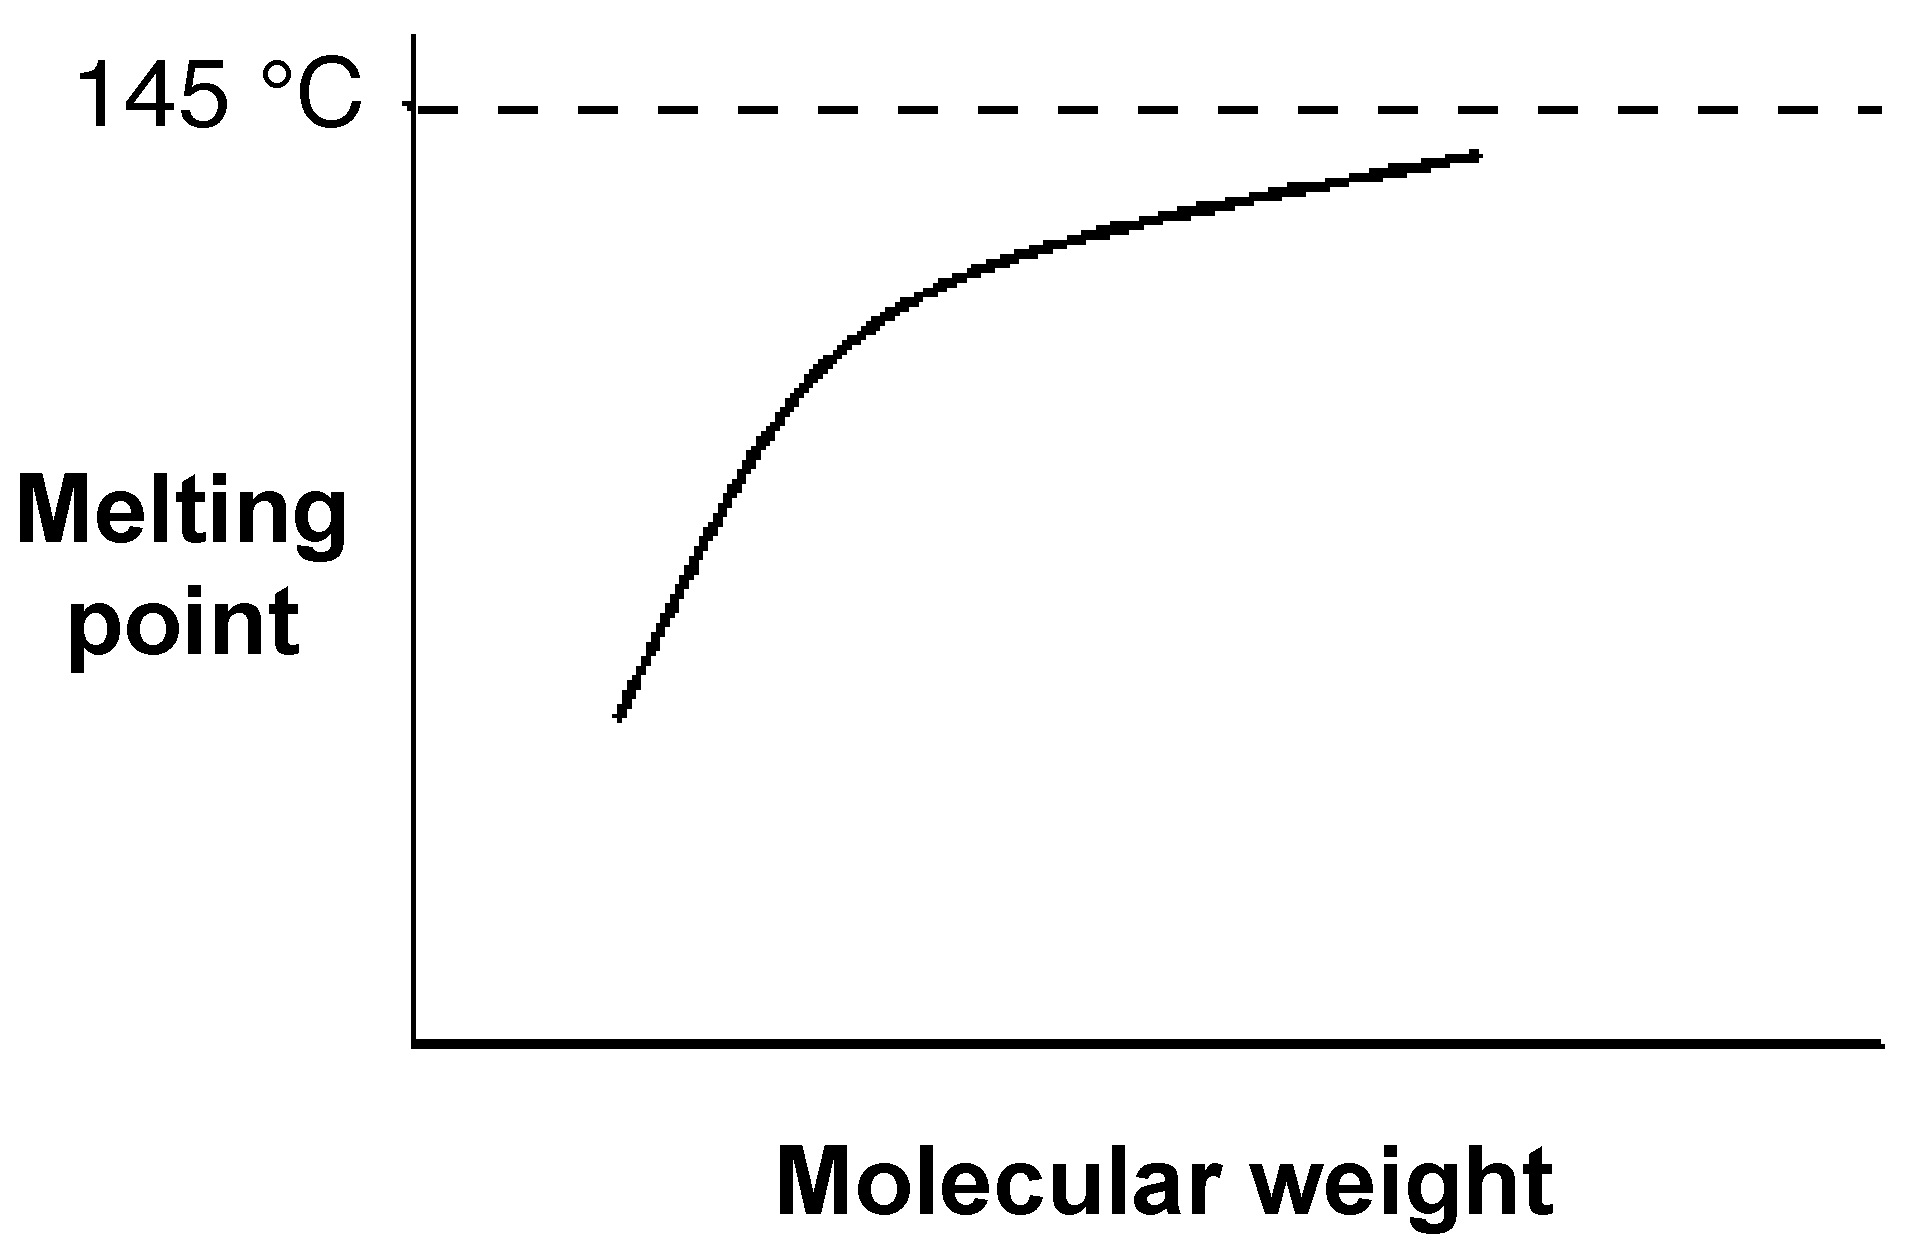 A diagram of the asymptotic approach of the melting point of a polymer to a specific value